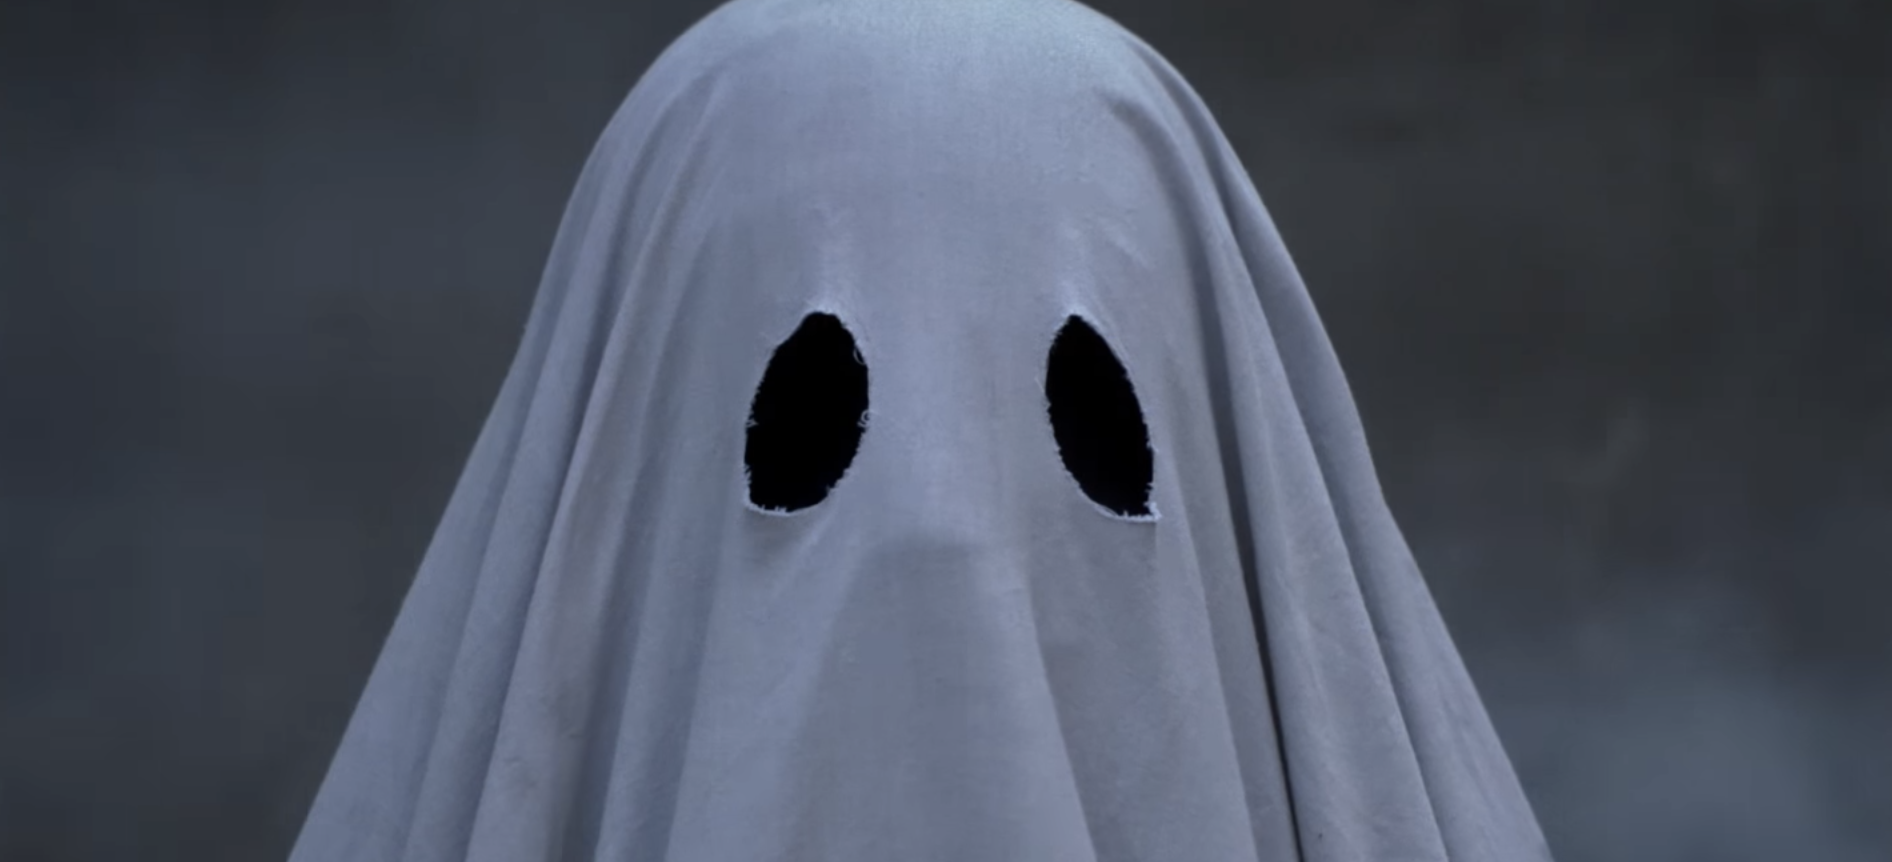 A Ghost Story Looks Like A Poignant Take On What It Means To Be Haunted By Loss